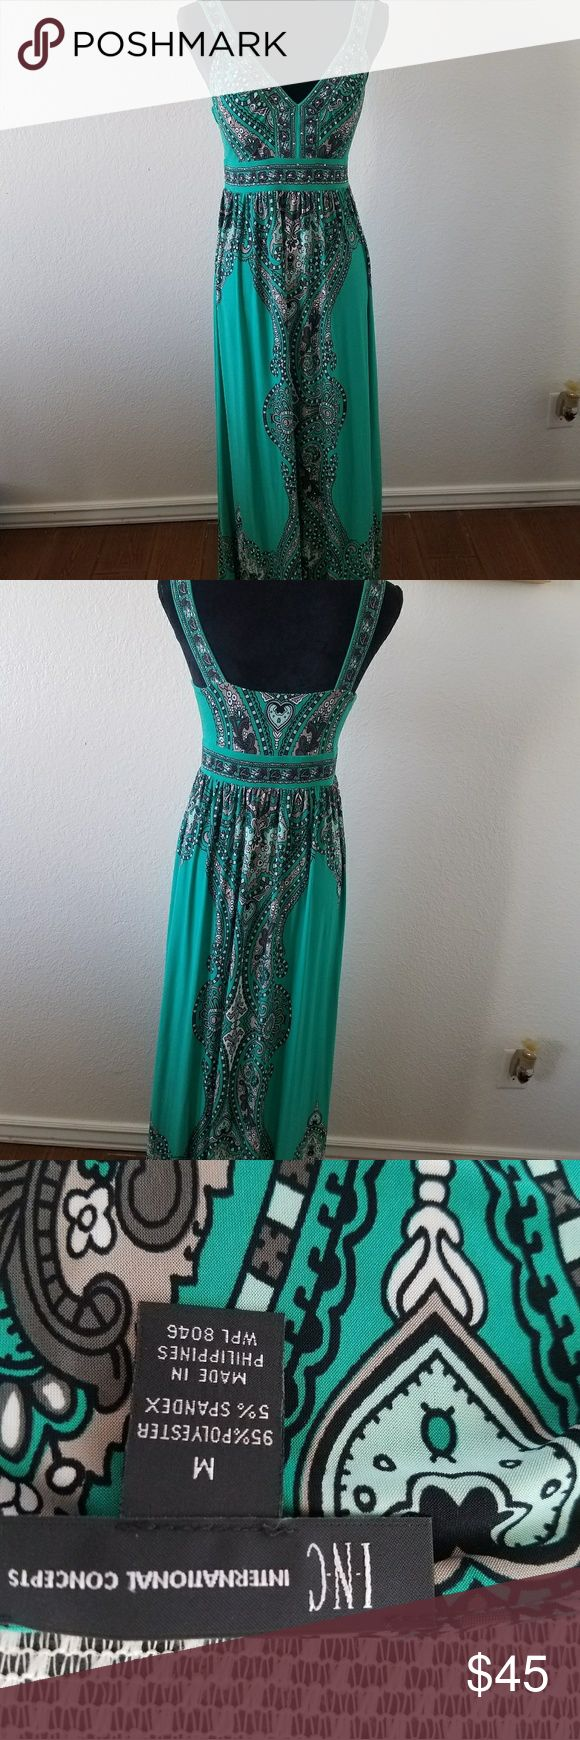 Sleeveless maxi dress. Purchased from Macy's, vibrant turquoise maxi dress with built-in bra. Worn only a few times excellent condition. Dresses Maxi